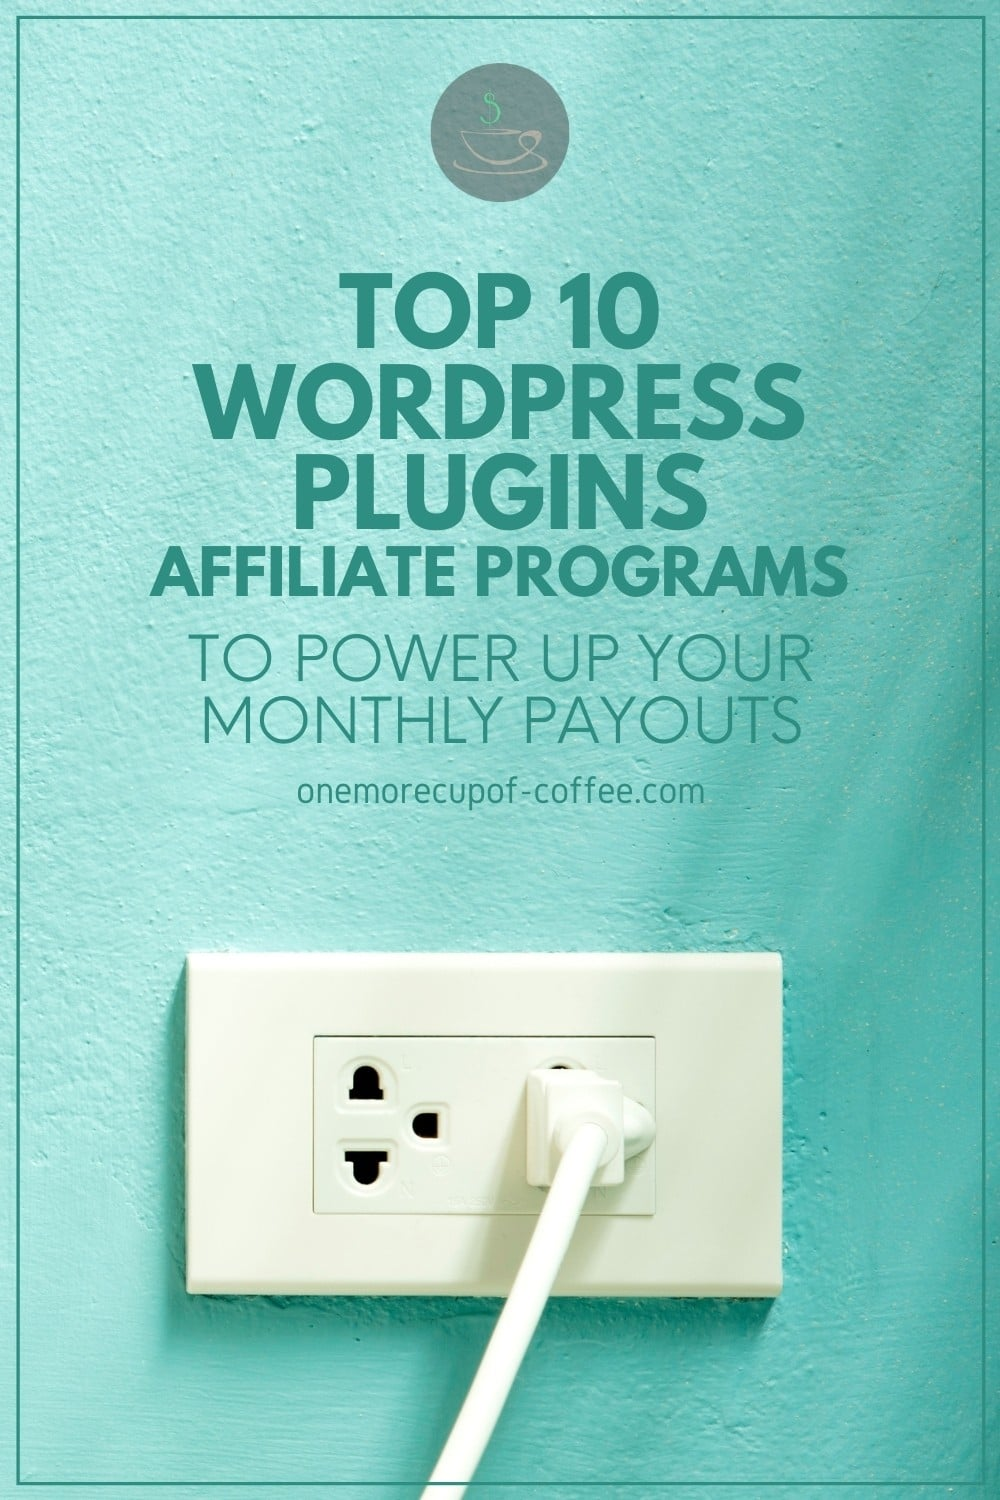 """light green wall with a socket and plug plugged in, with text overlay """"Top 10 WordPress Plugins Affiliate Programs To Power Up Your Monthly Payouts"""""""